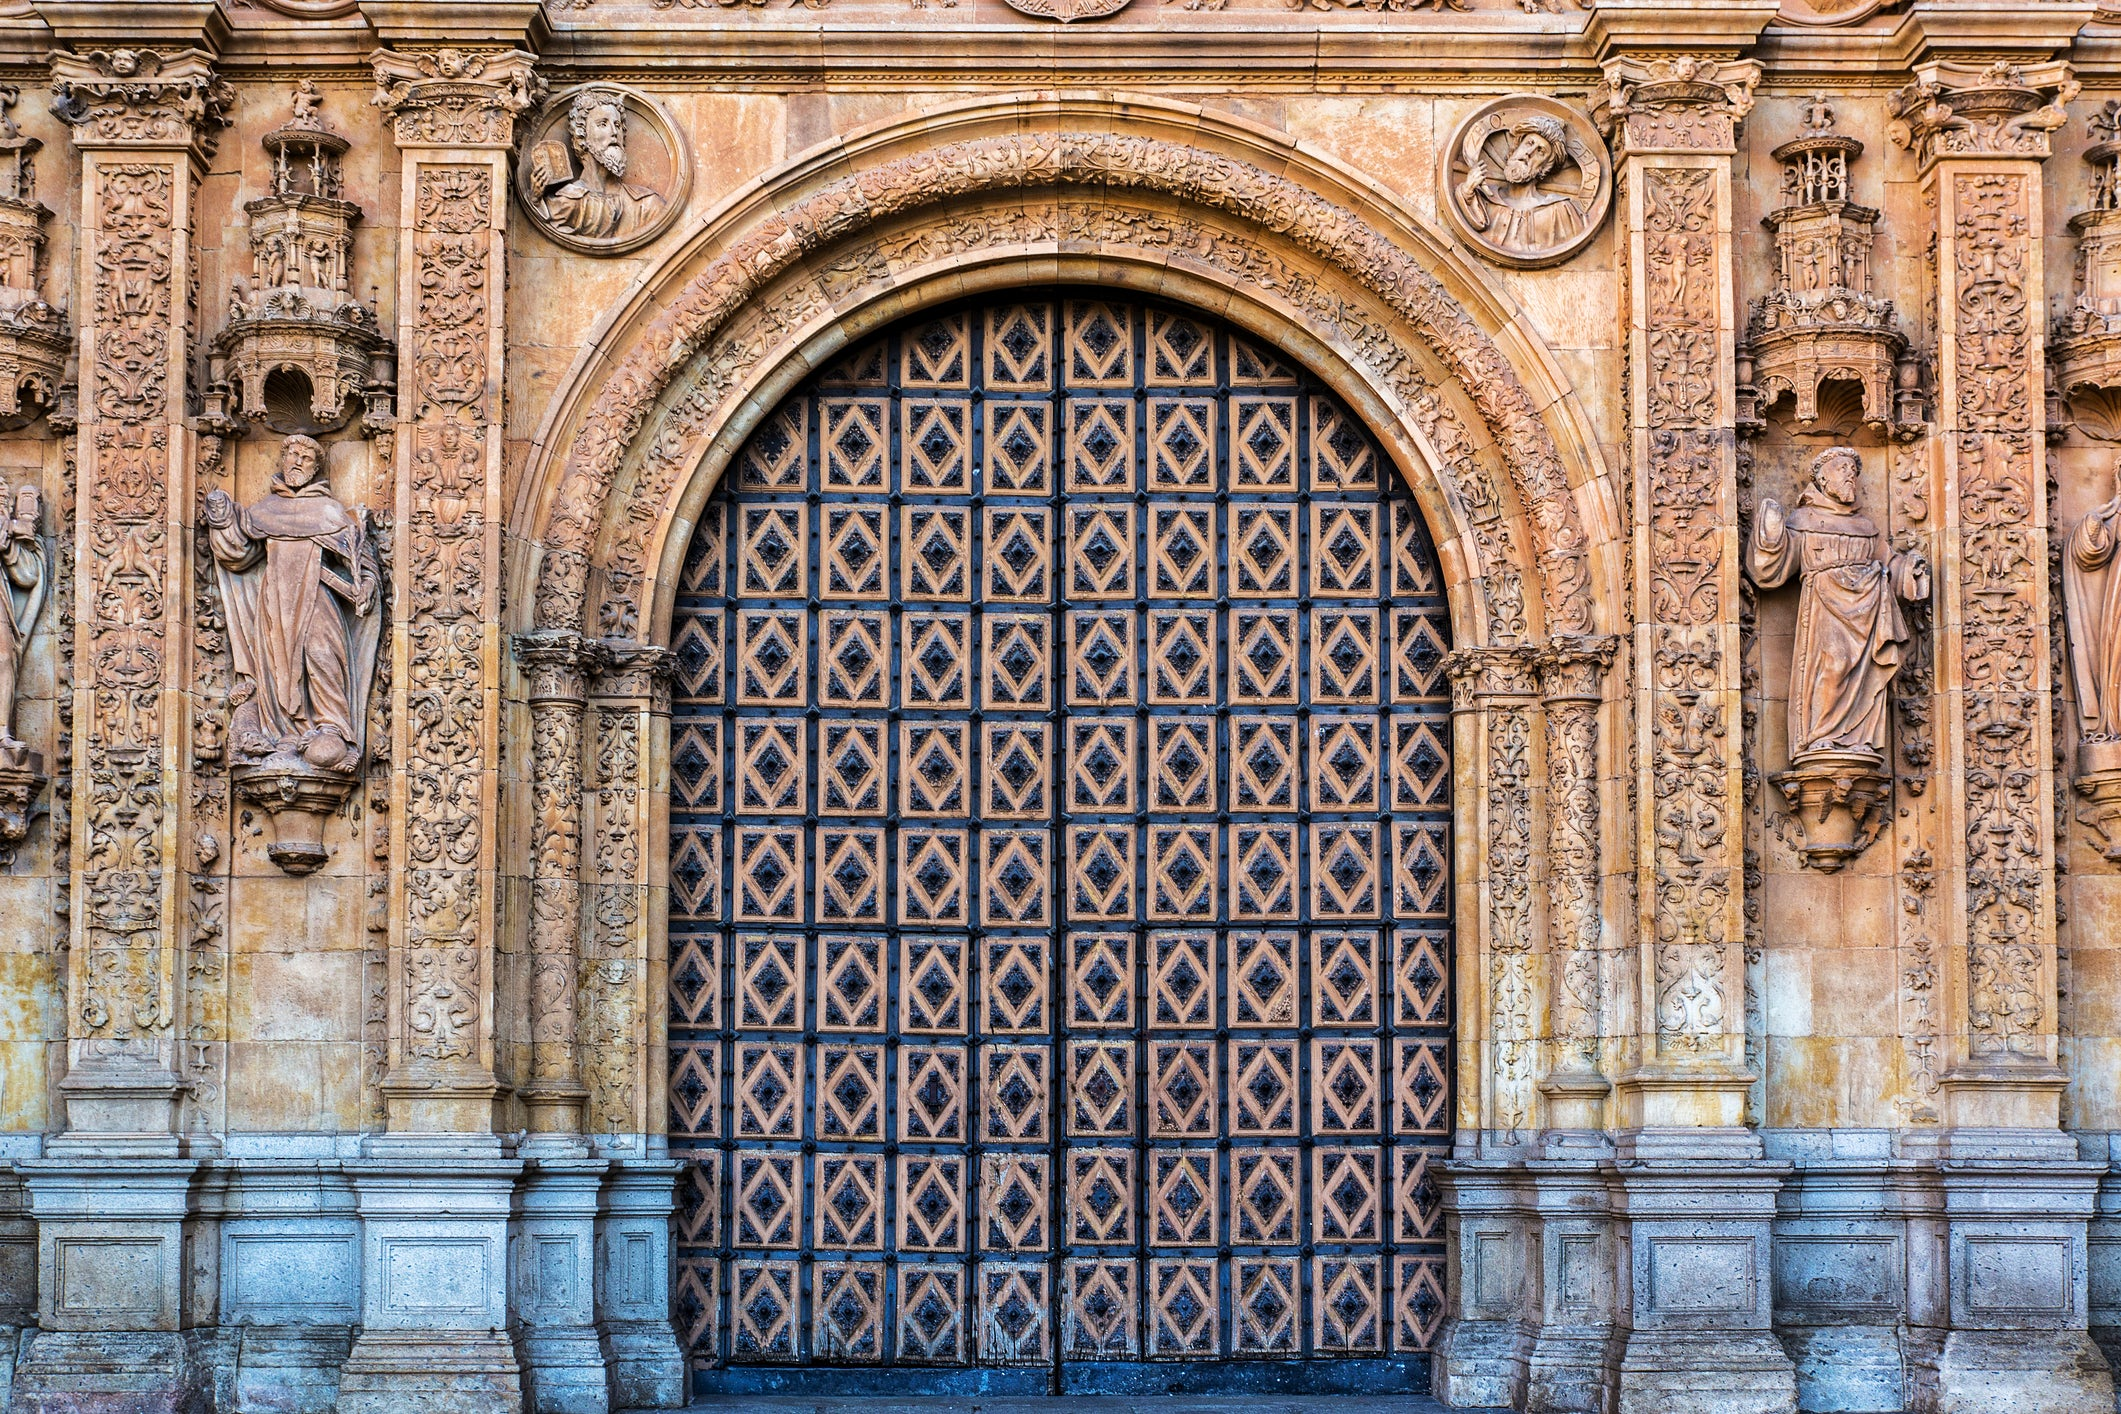 Salamanca, the city of thought and knowledge!